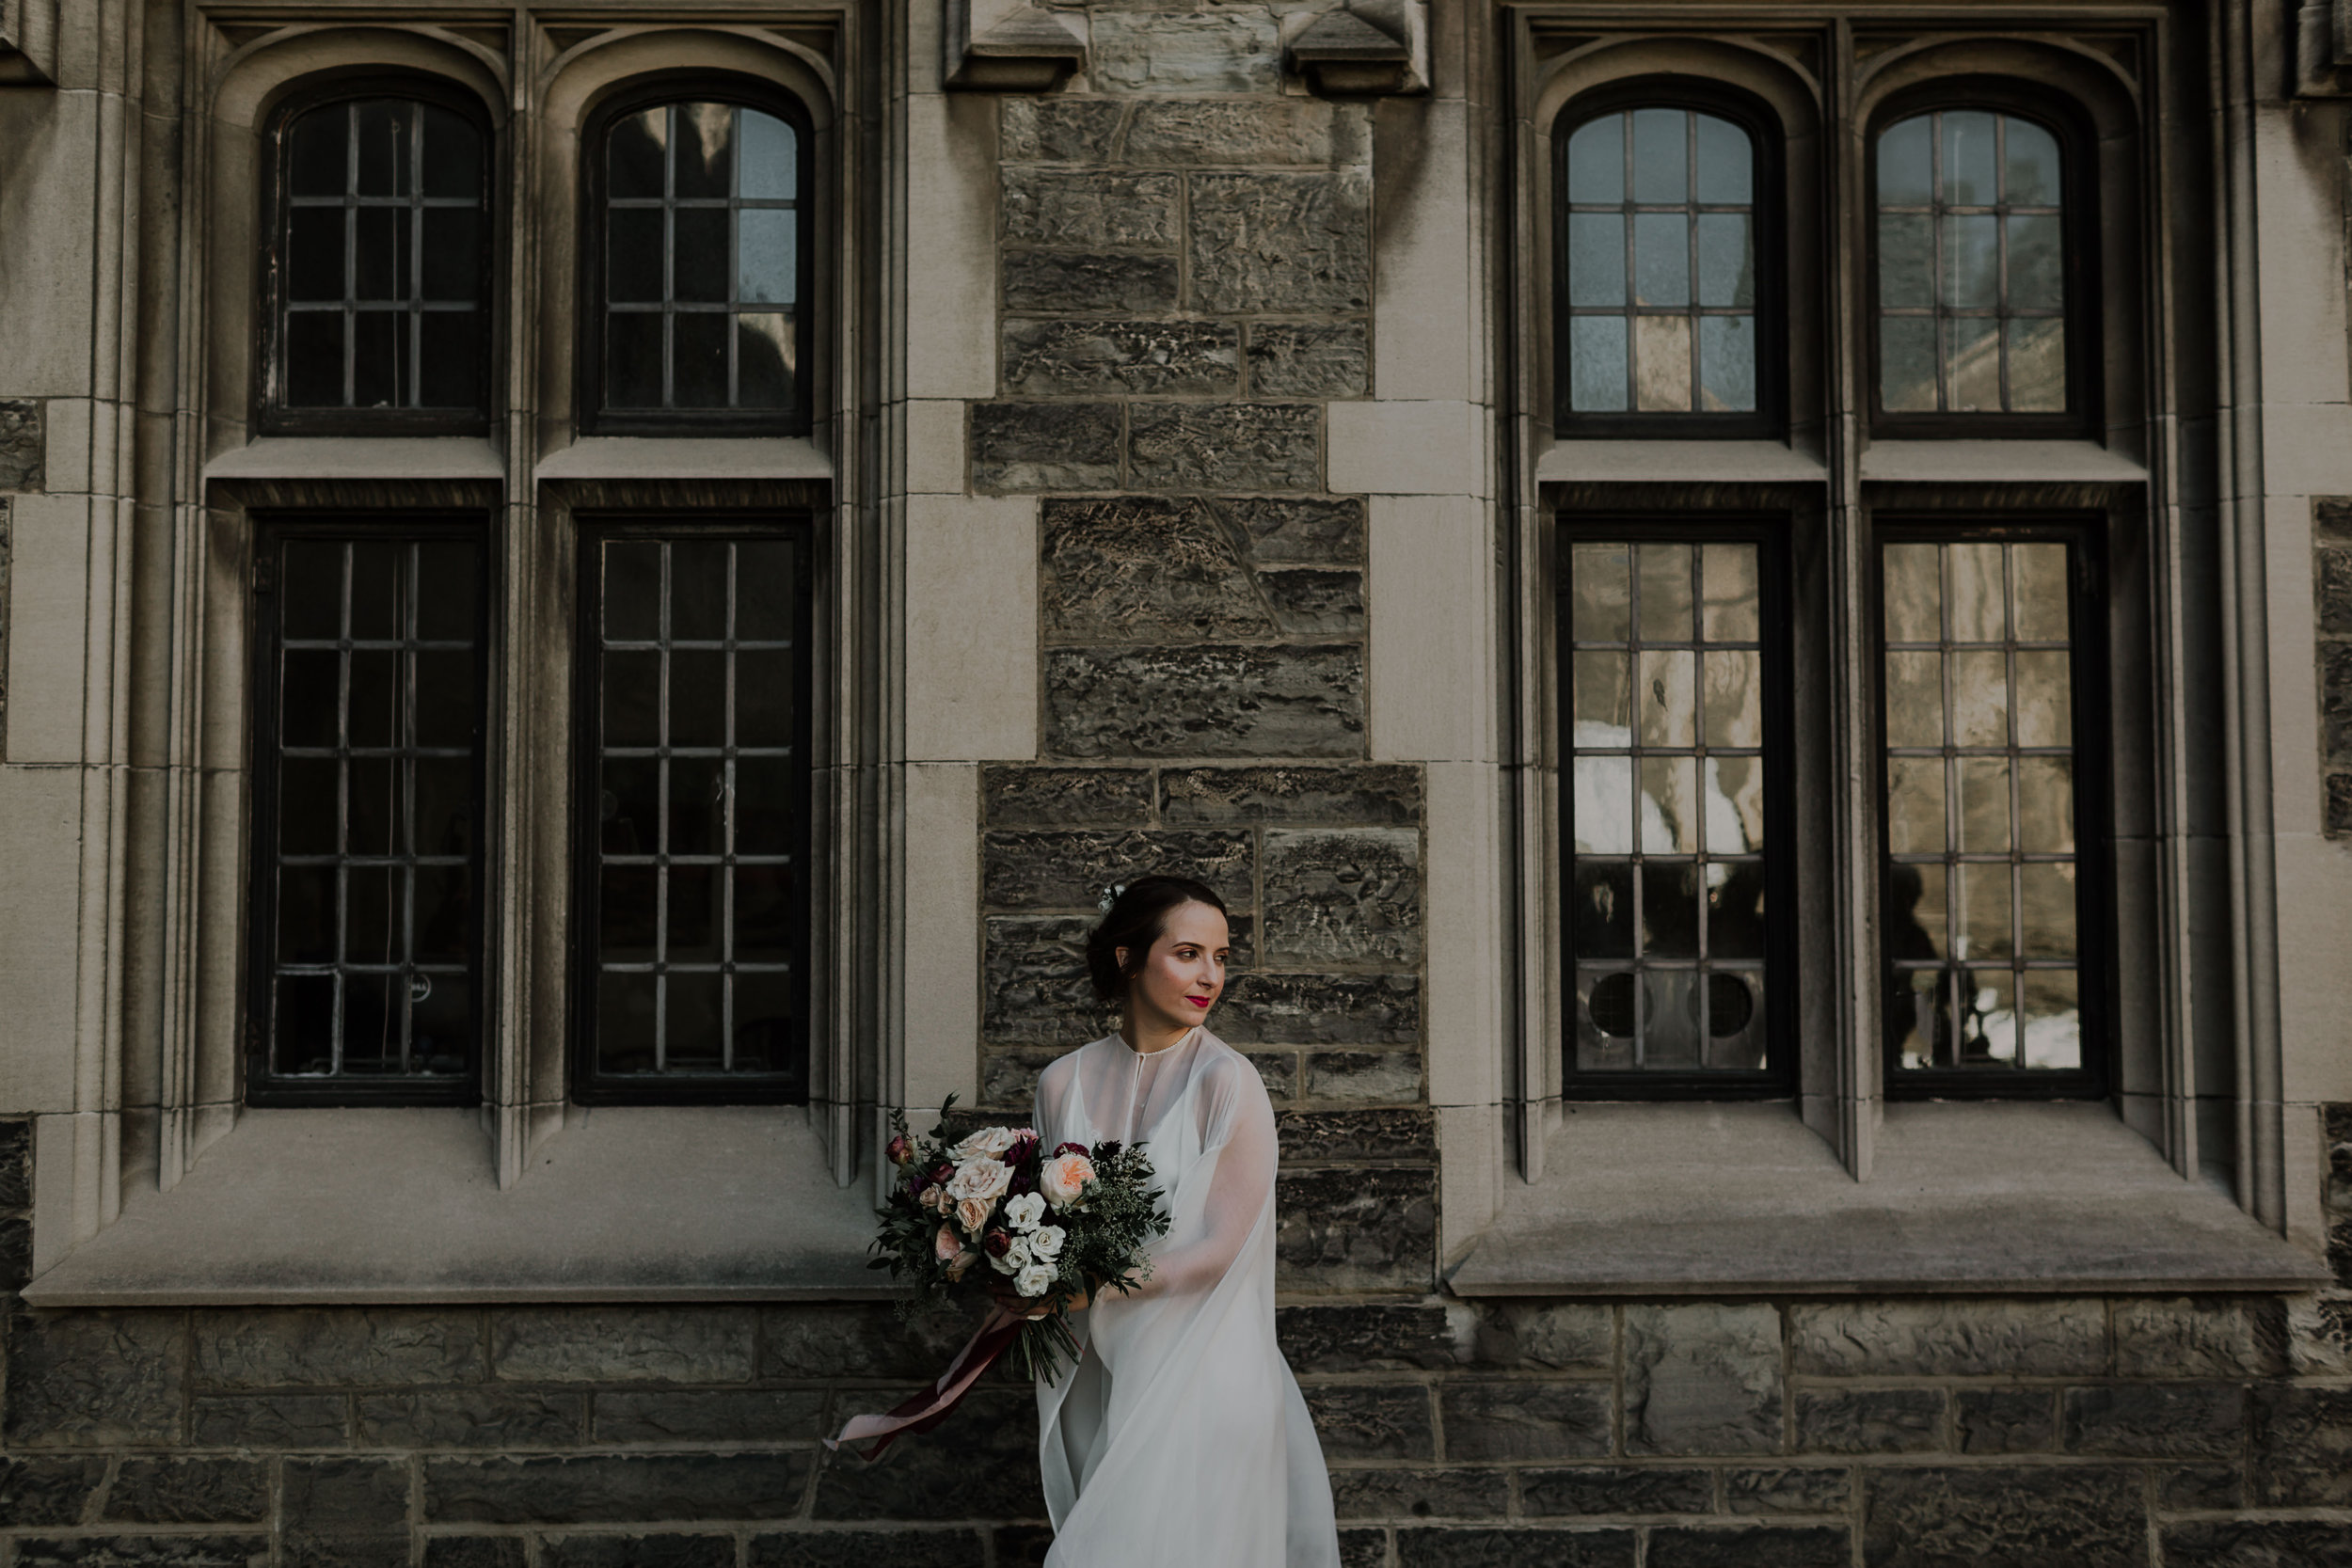 alex dylan wedding toronto hart house distillery district fall autumn outdoor best top flowers rikki marcone events wild rustic